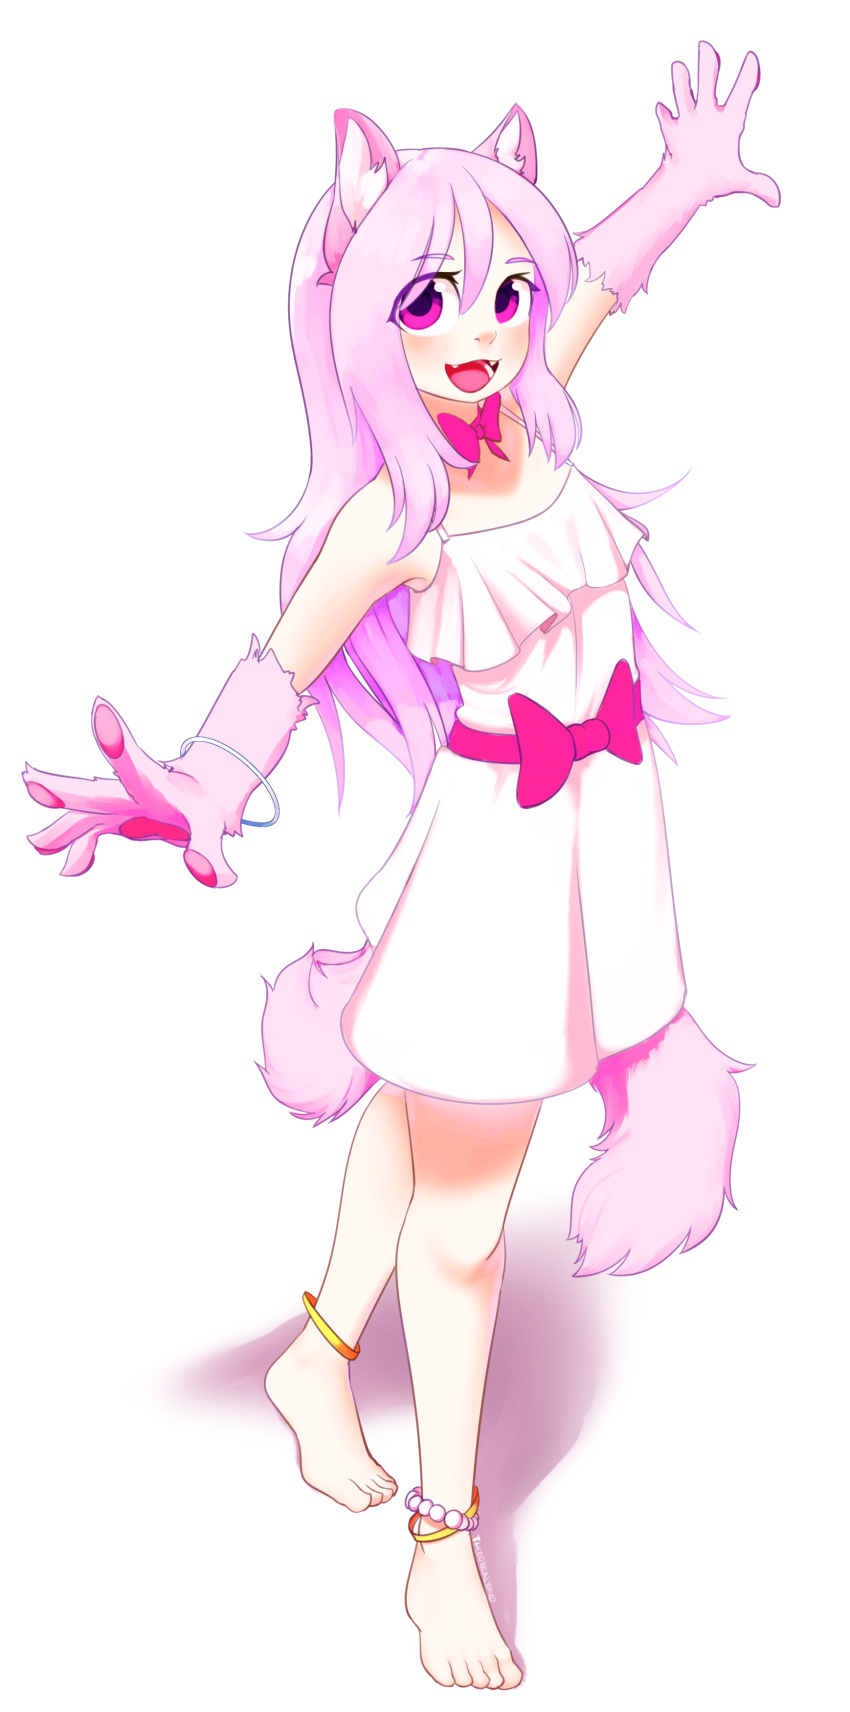 1girl :d absurdres animal_ear_fluff animal_ears anklet barefoot bead_anklet bow bowtie bracelet cat_ears cat_girl cat_tail commentary commission dress english_commentary fangs full_body highres jewelry looking_at_viewer monster_girl open_mouth original outstretched_arms paws pink_bow pink_eyes pink_hair pink_neckwear signature simple_background smile solo spread_arms sundress tail white_background white_dress yoako